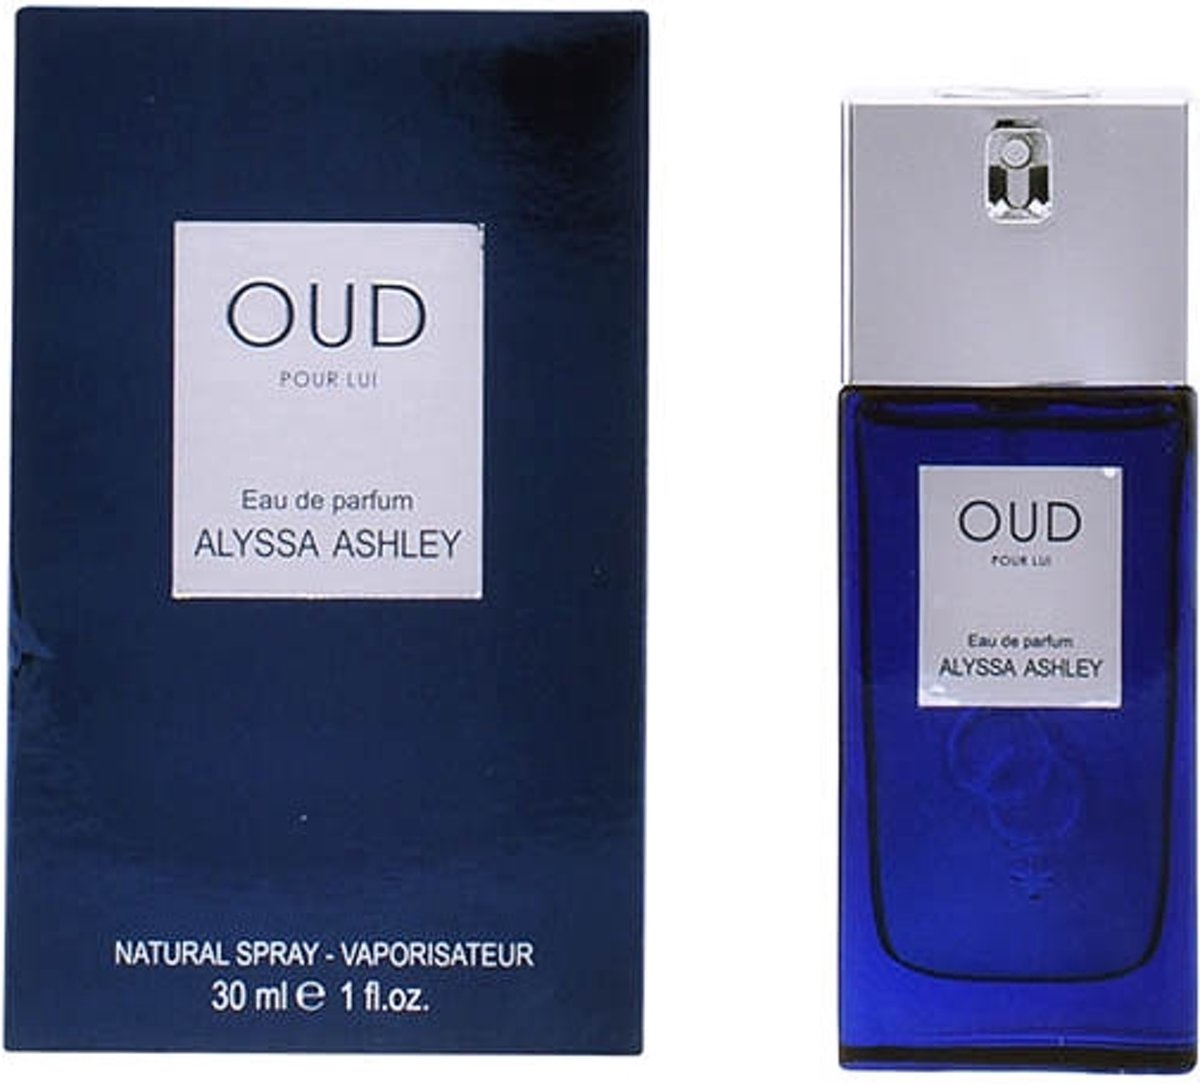 Alyssa Ashley - OUD POUR LUI edp 30 ml